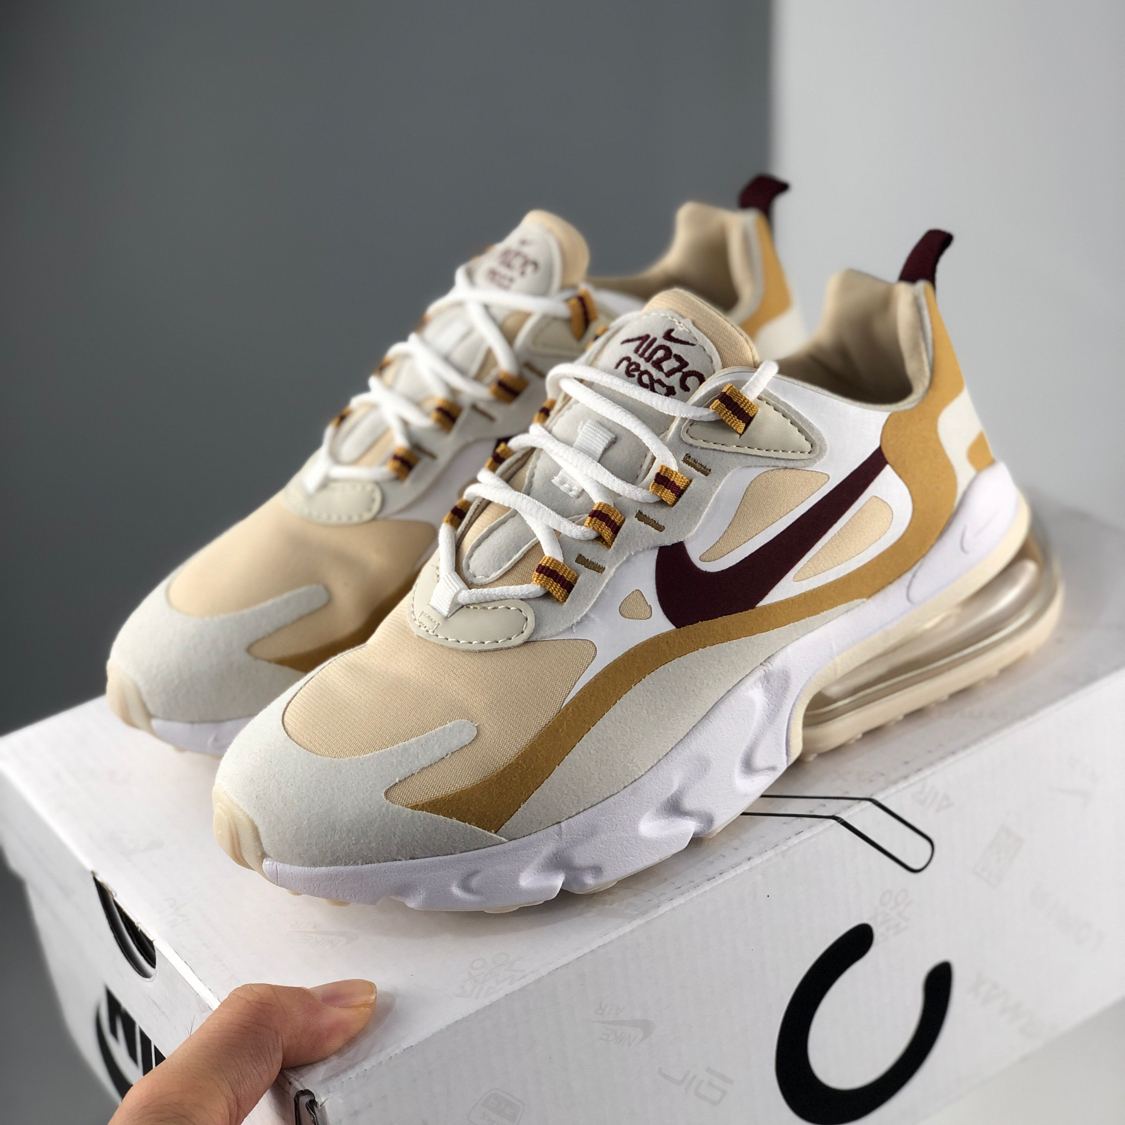 Image of Nike Air Max 270 React soft foam midsole fashion cushioned running shoes